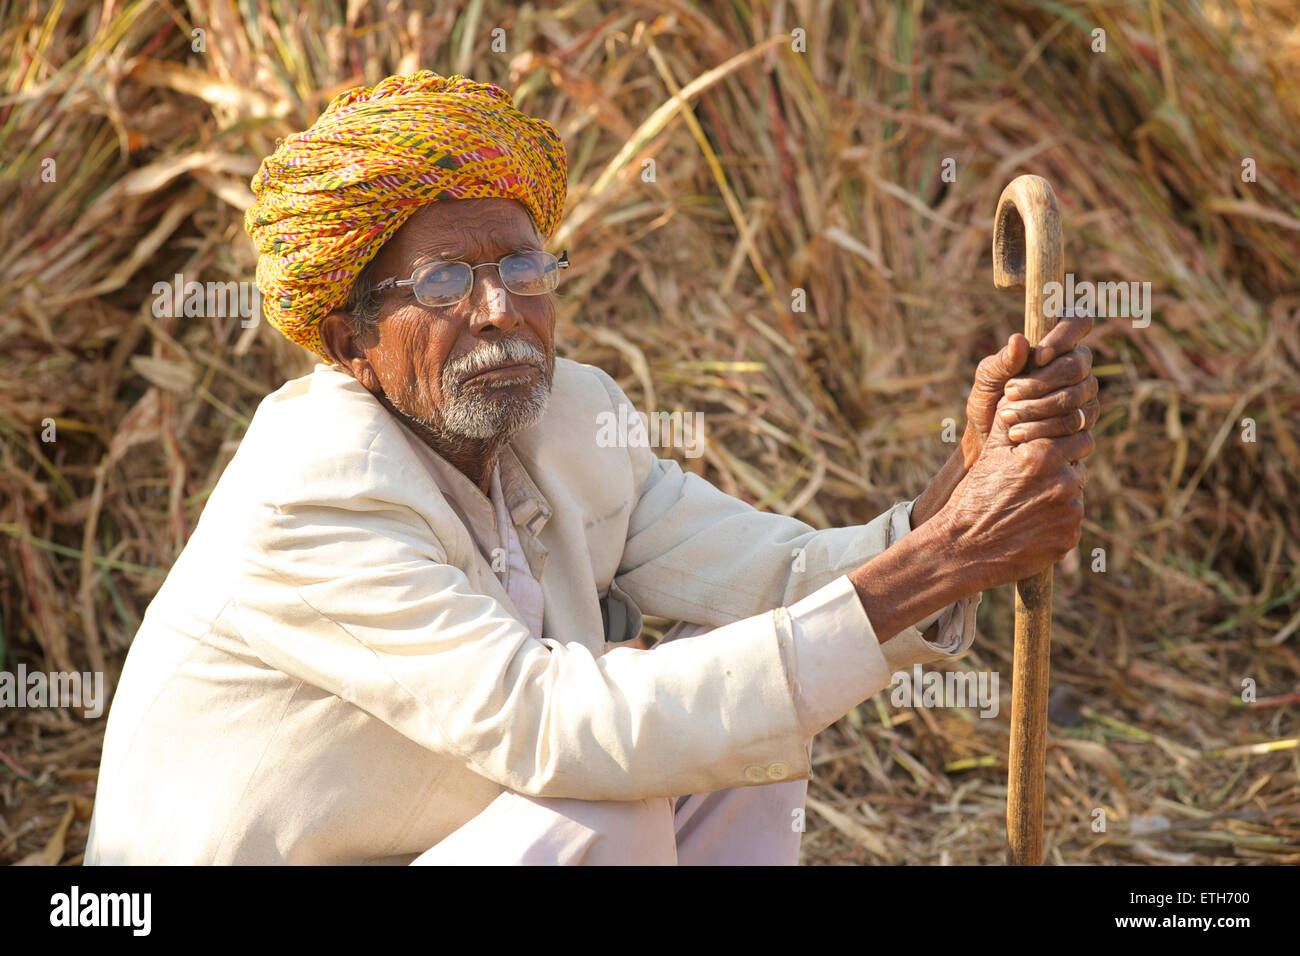 Portarit of Rajasthani man in white clothes and colourful turban, Pushkar, Rajasthan, India - Stock Image